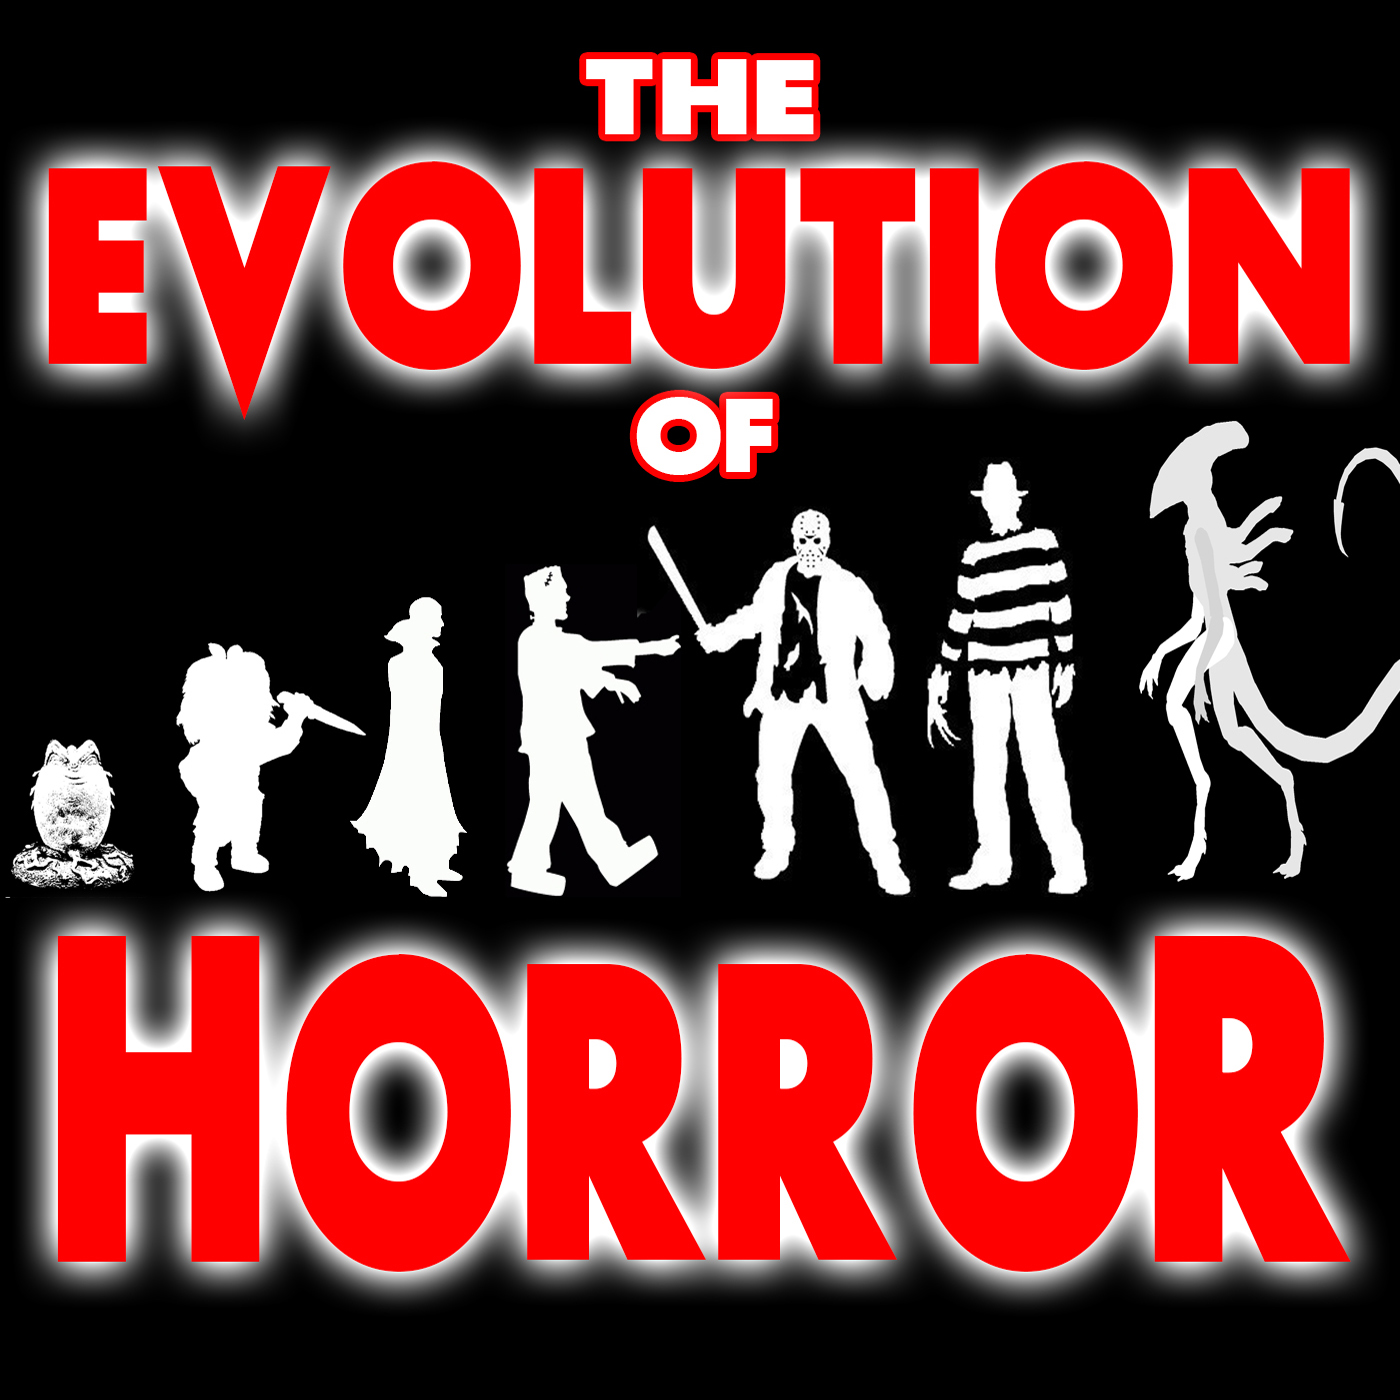 The Evolution of Horror